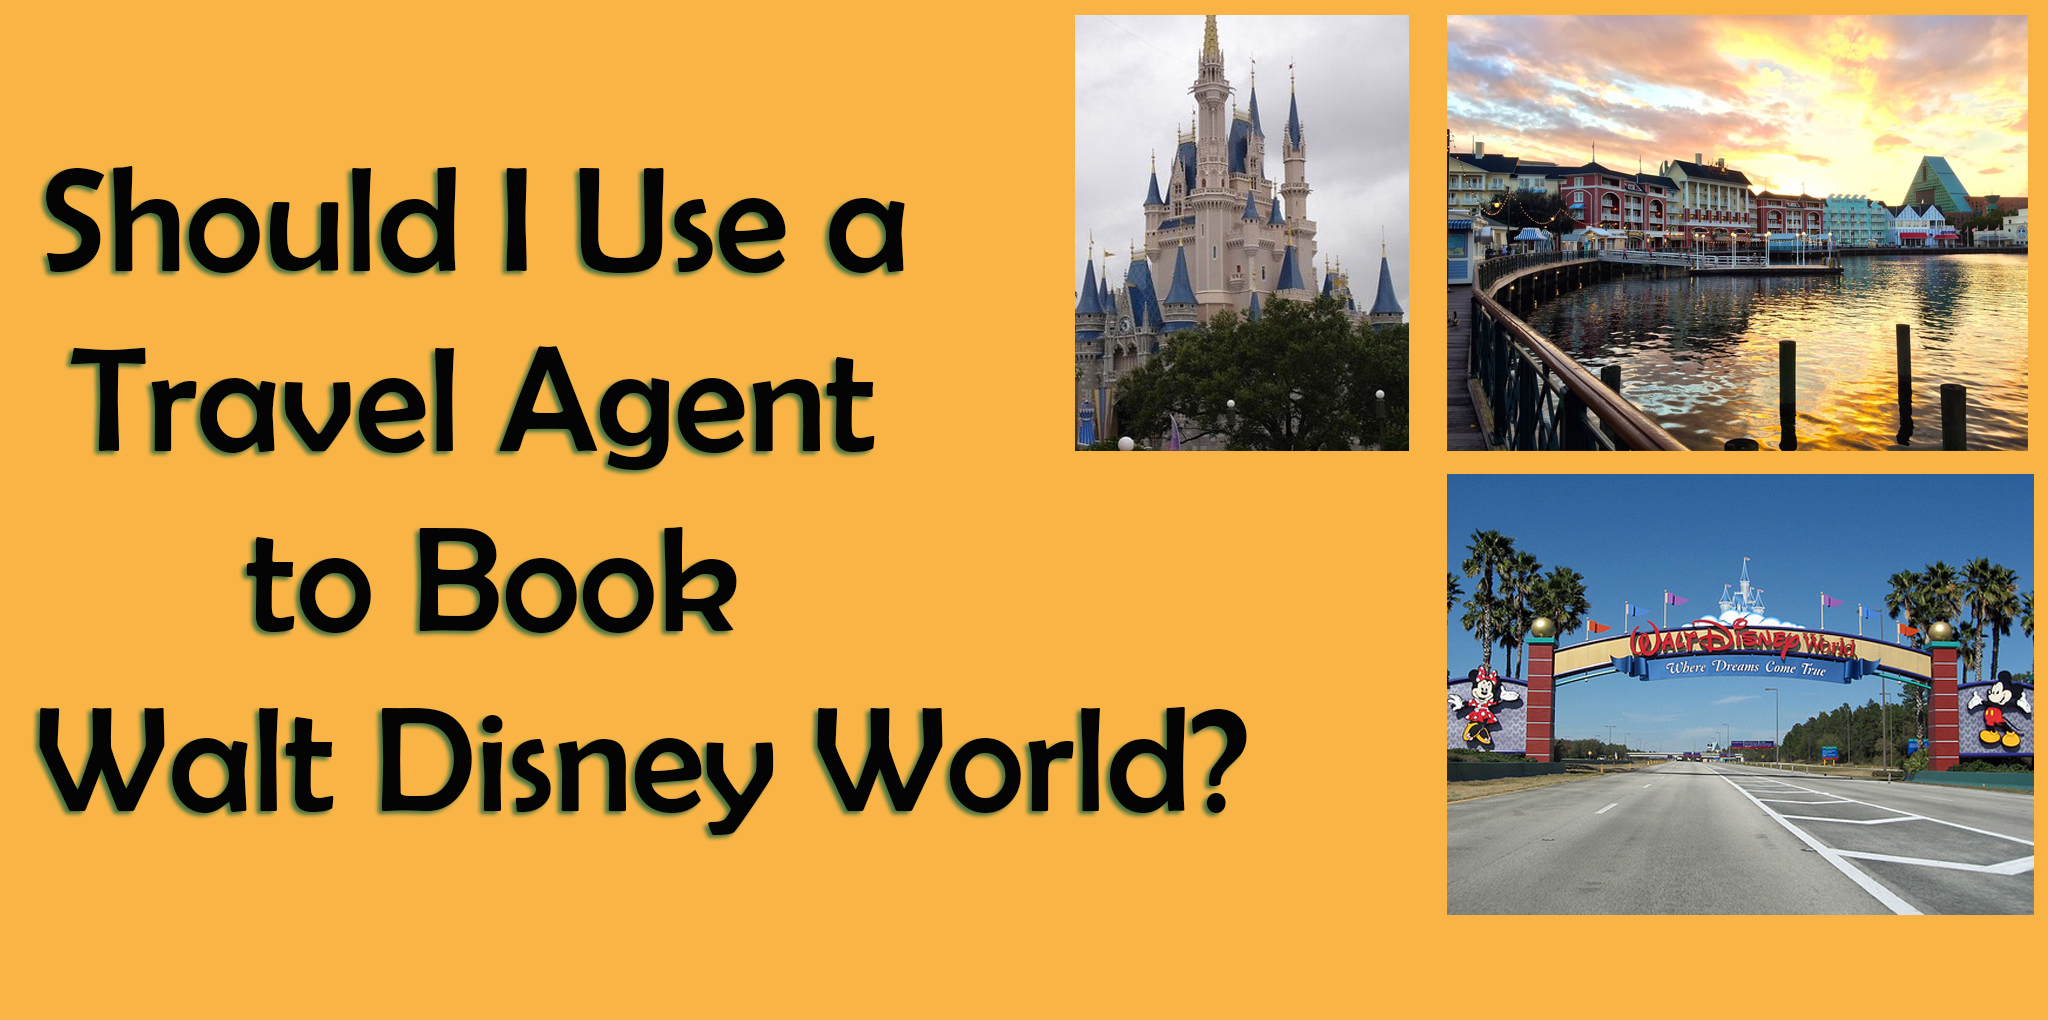 Should I use a Travel Agent or Book My Disney World Trip